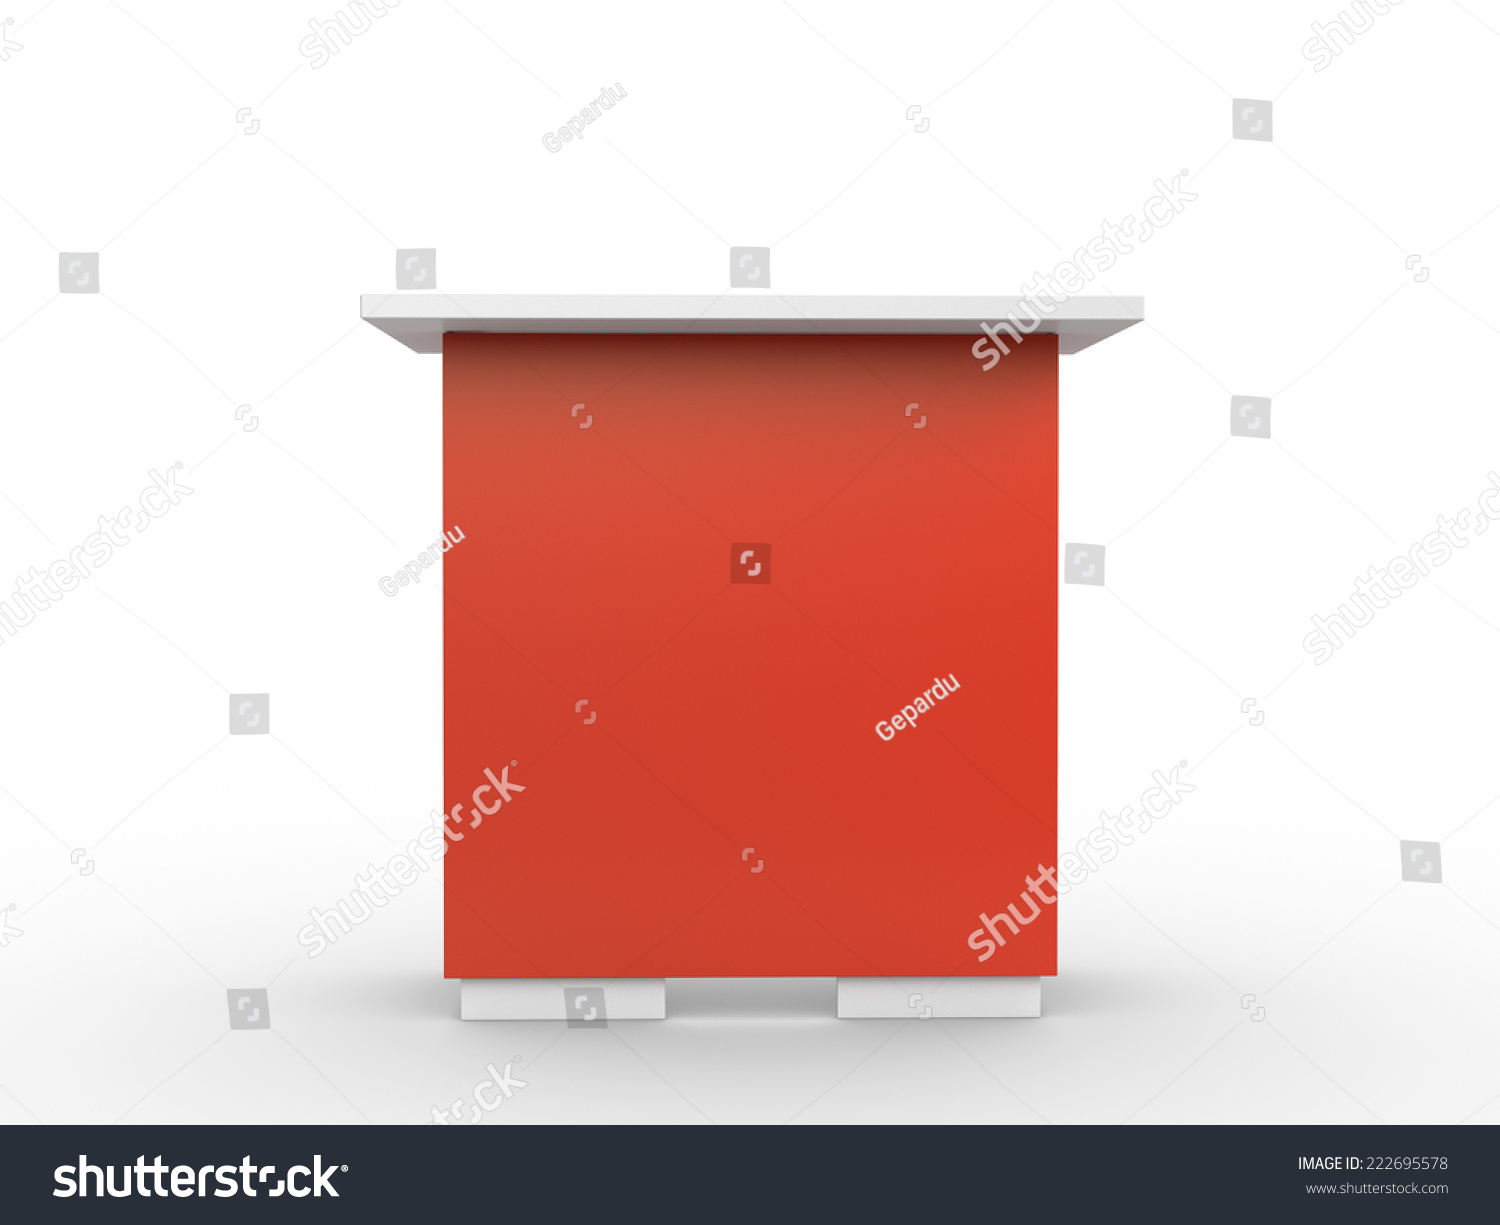 Red Booth Table Fromt Stock Illustration Shutterstock - Booth or table